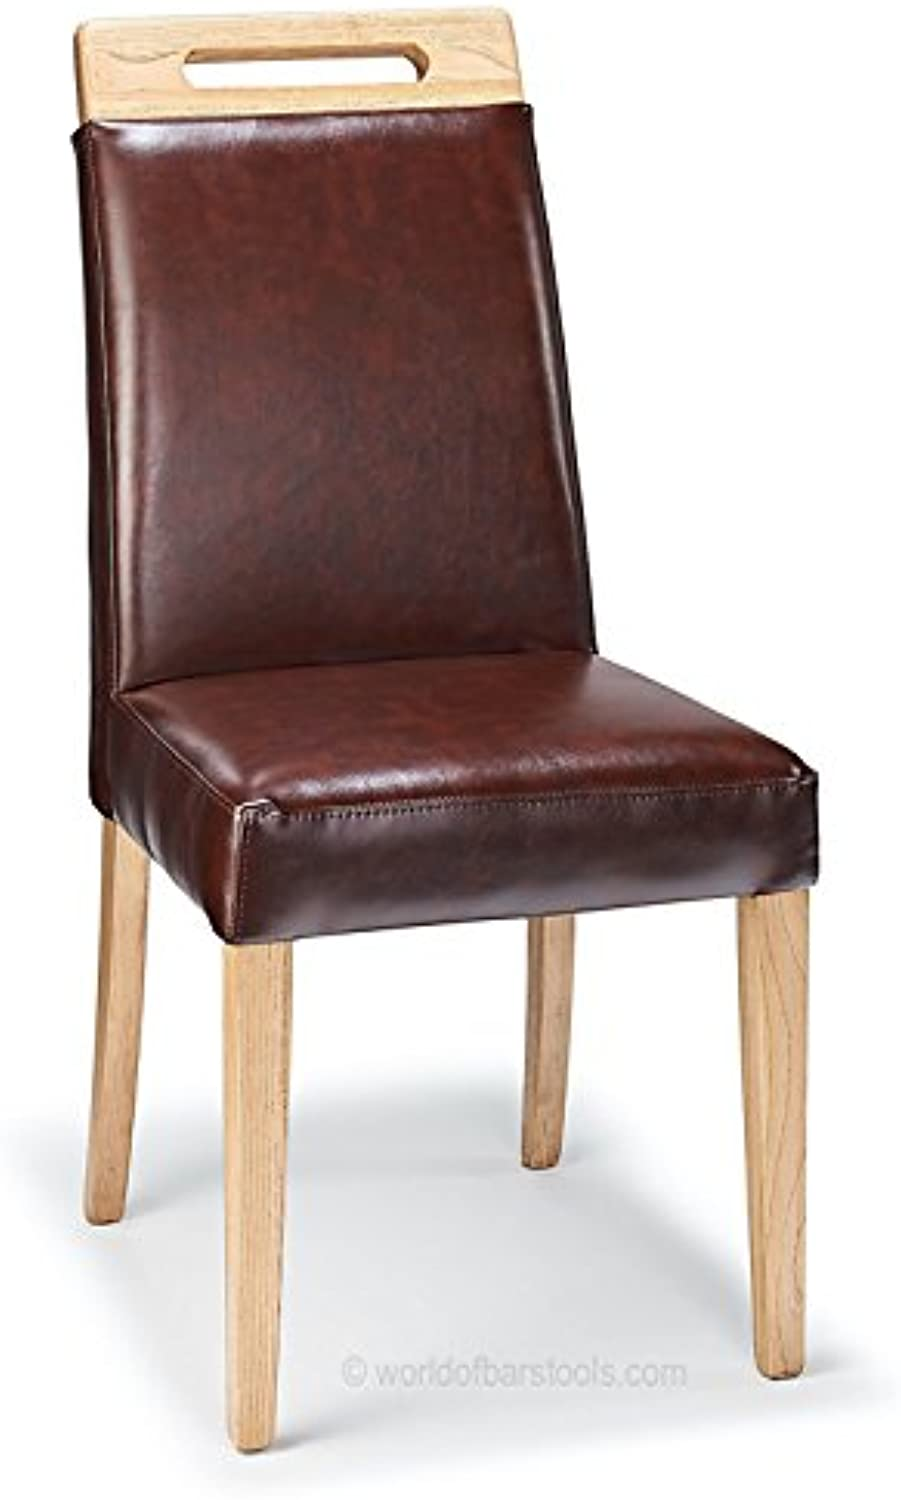 Bar Stools UK Modena Dining Chair Antique Brown Leather & Rustic Oak